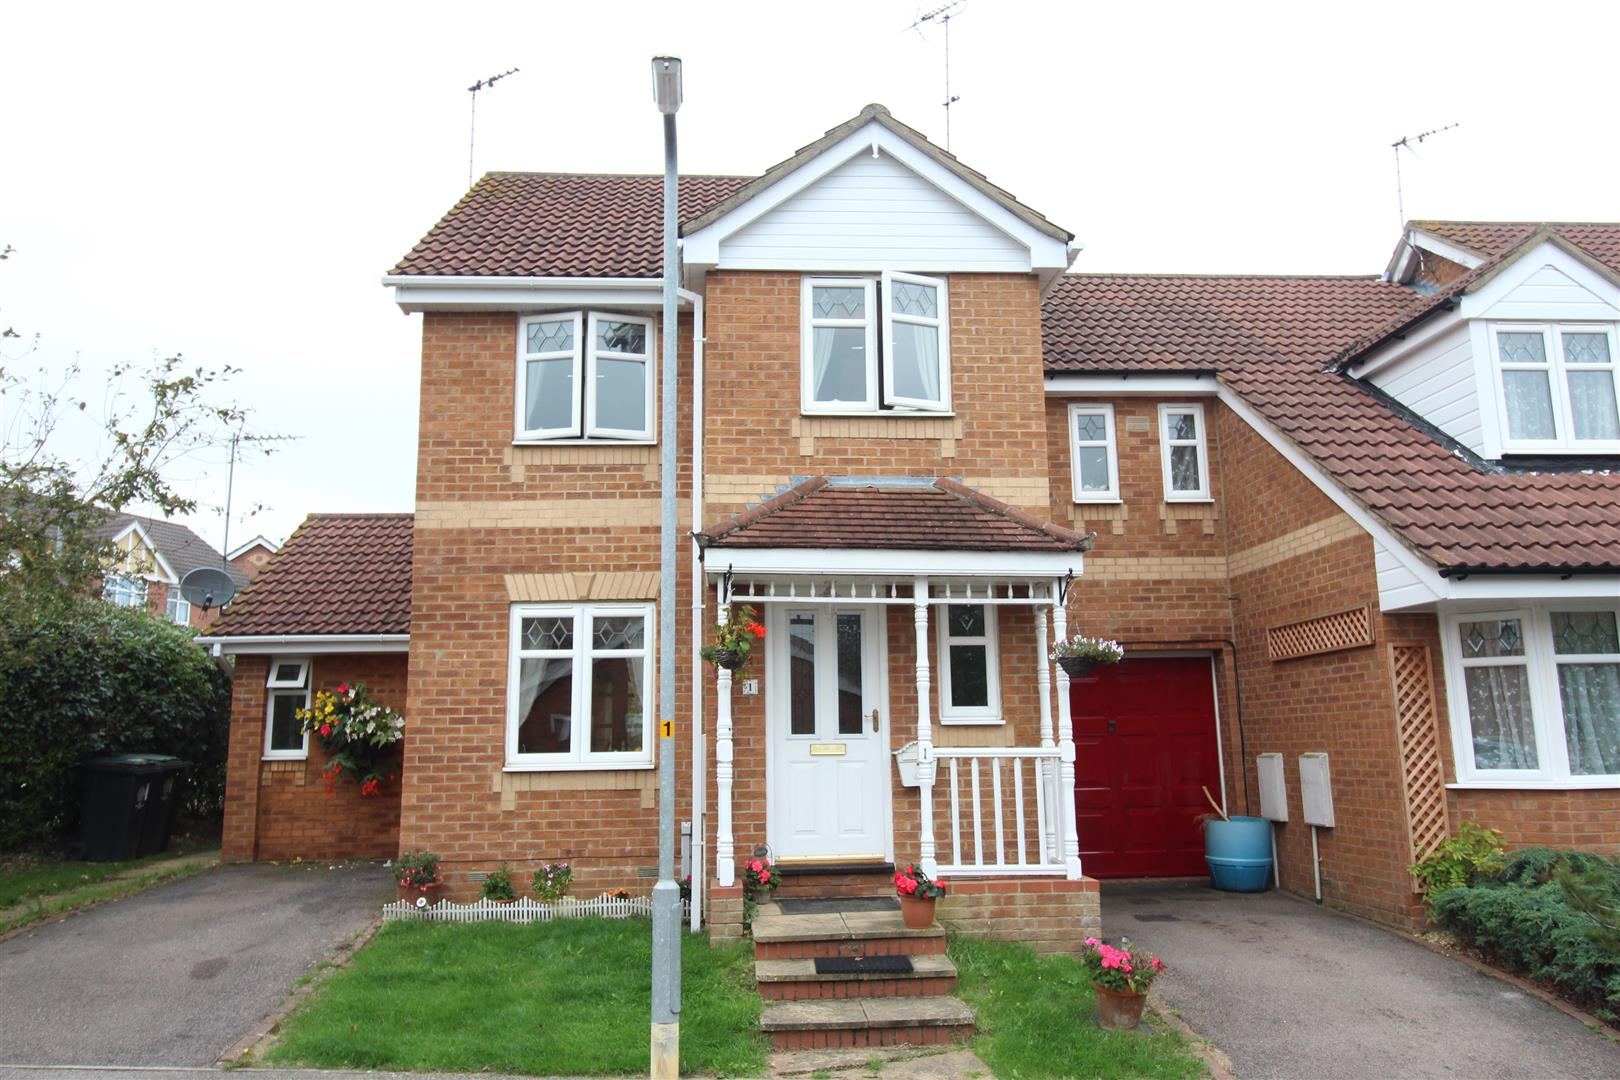 3 Bedrooms End Of Terrace House for sale in Home Close, Irthlingborough